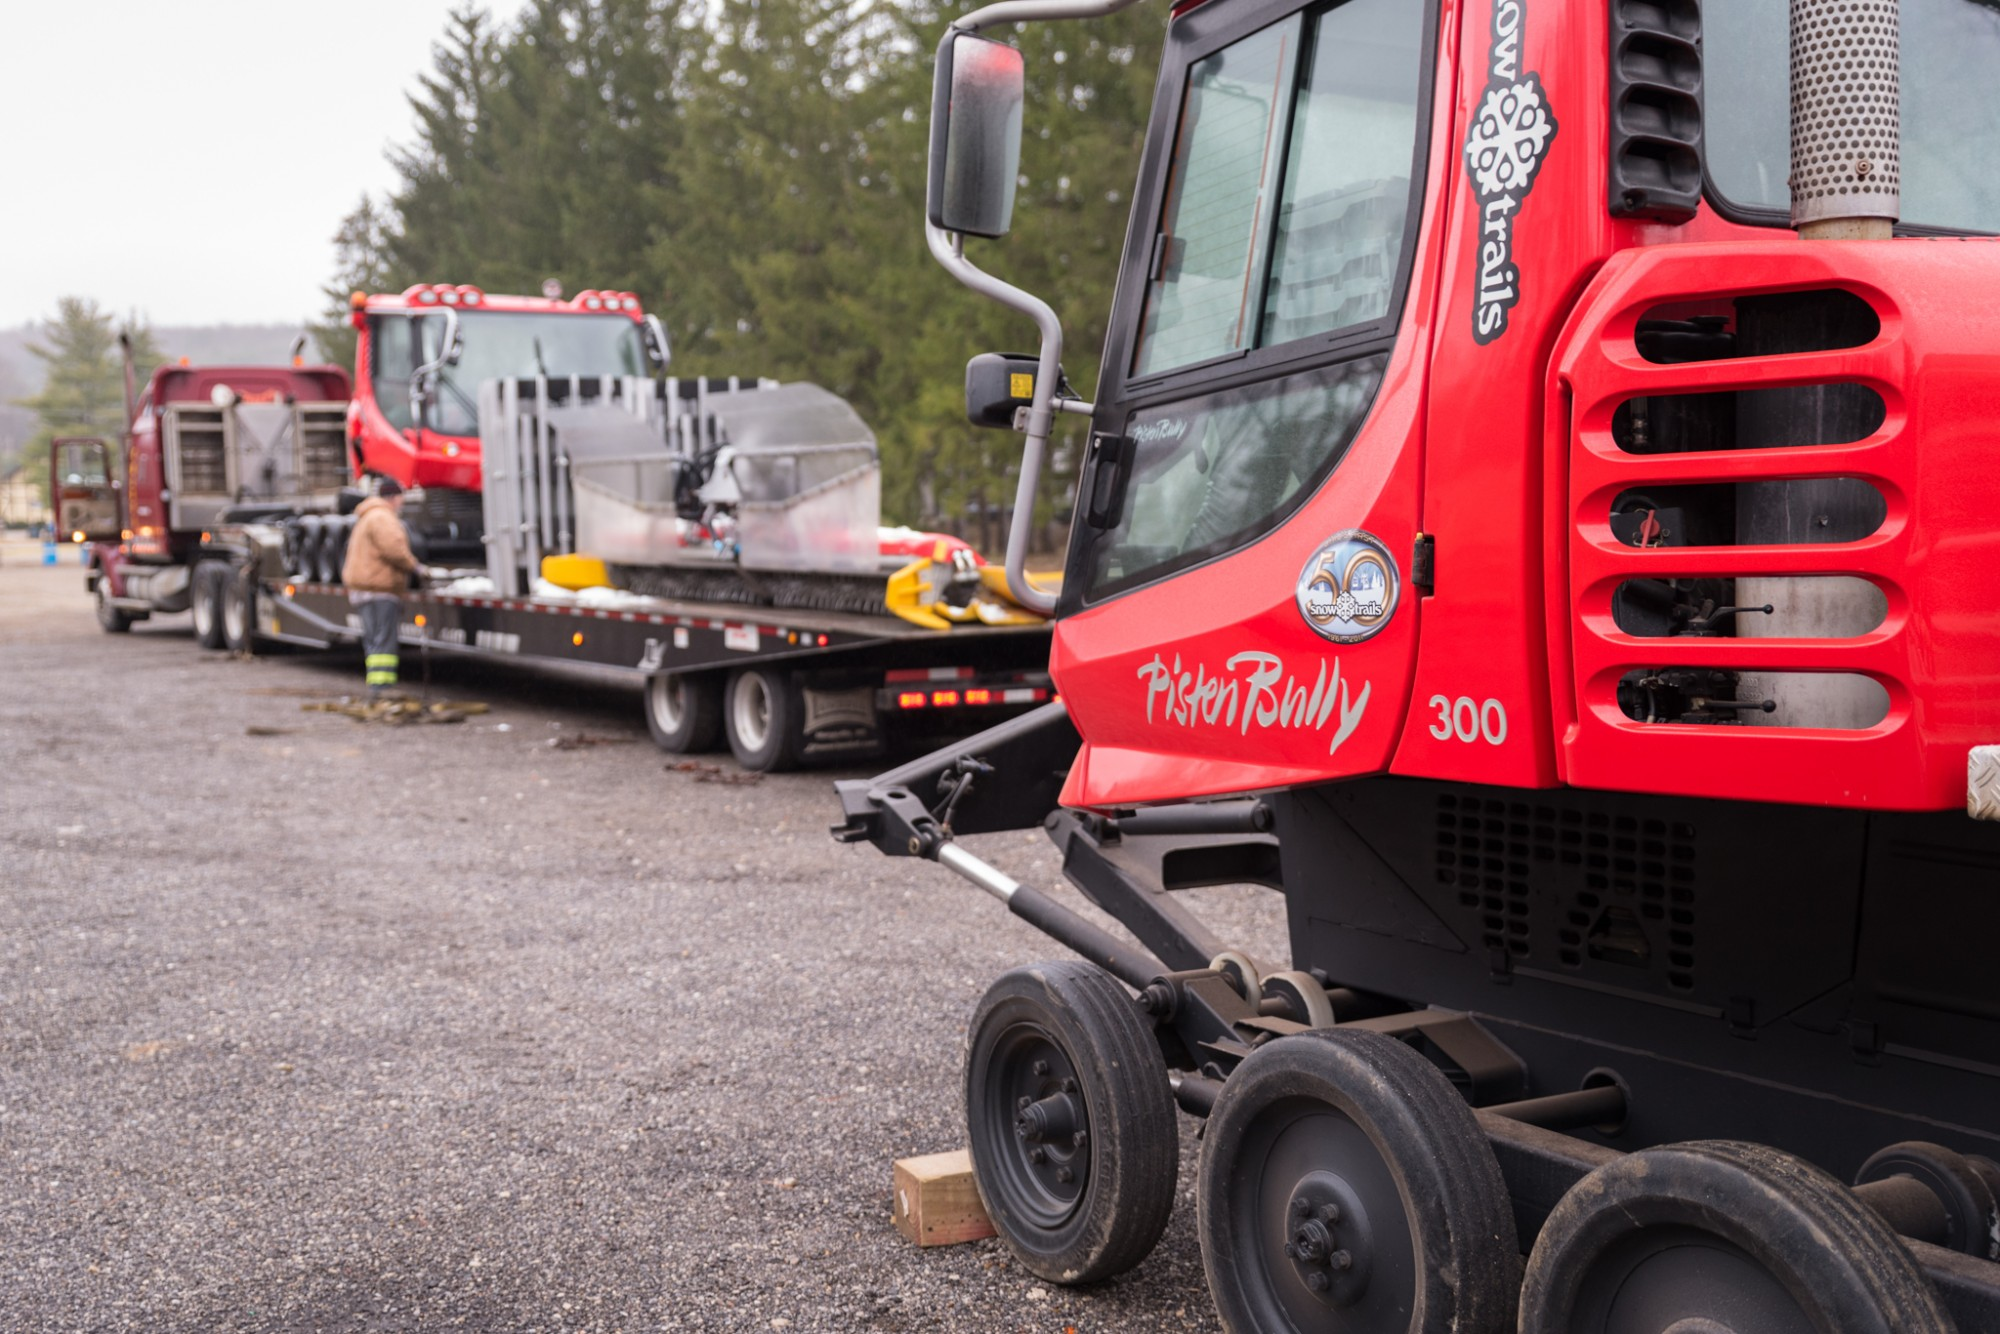 Pisten Bully 300 Snow Cat departs Snow Trails